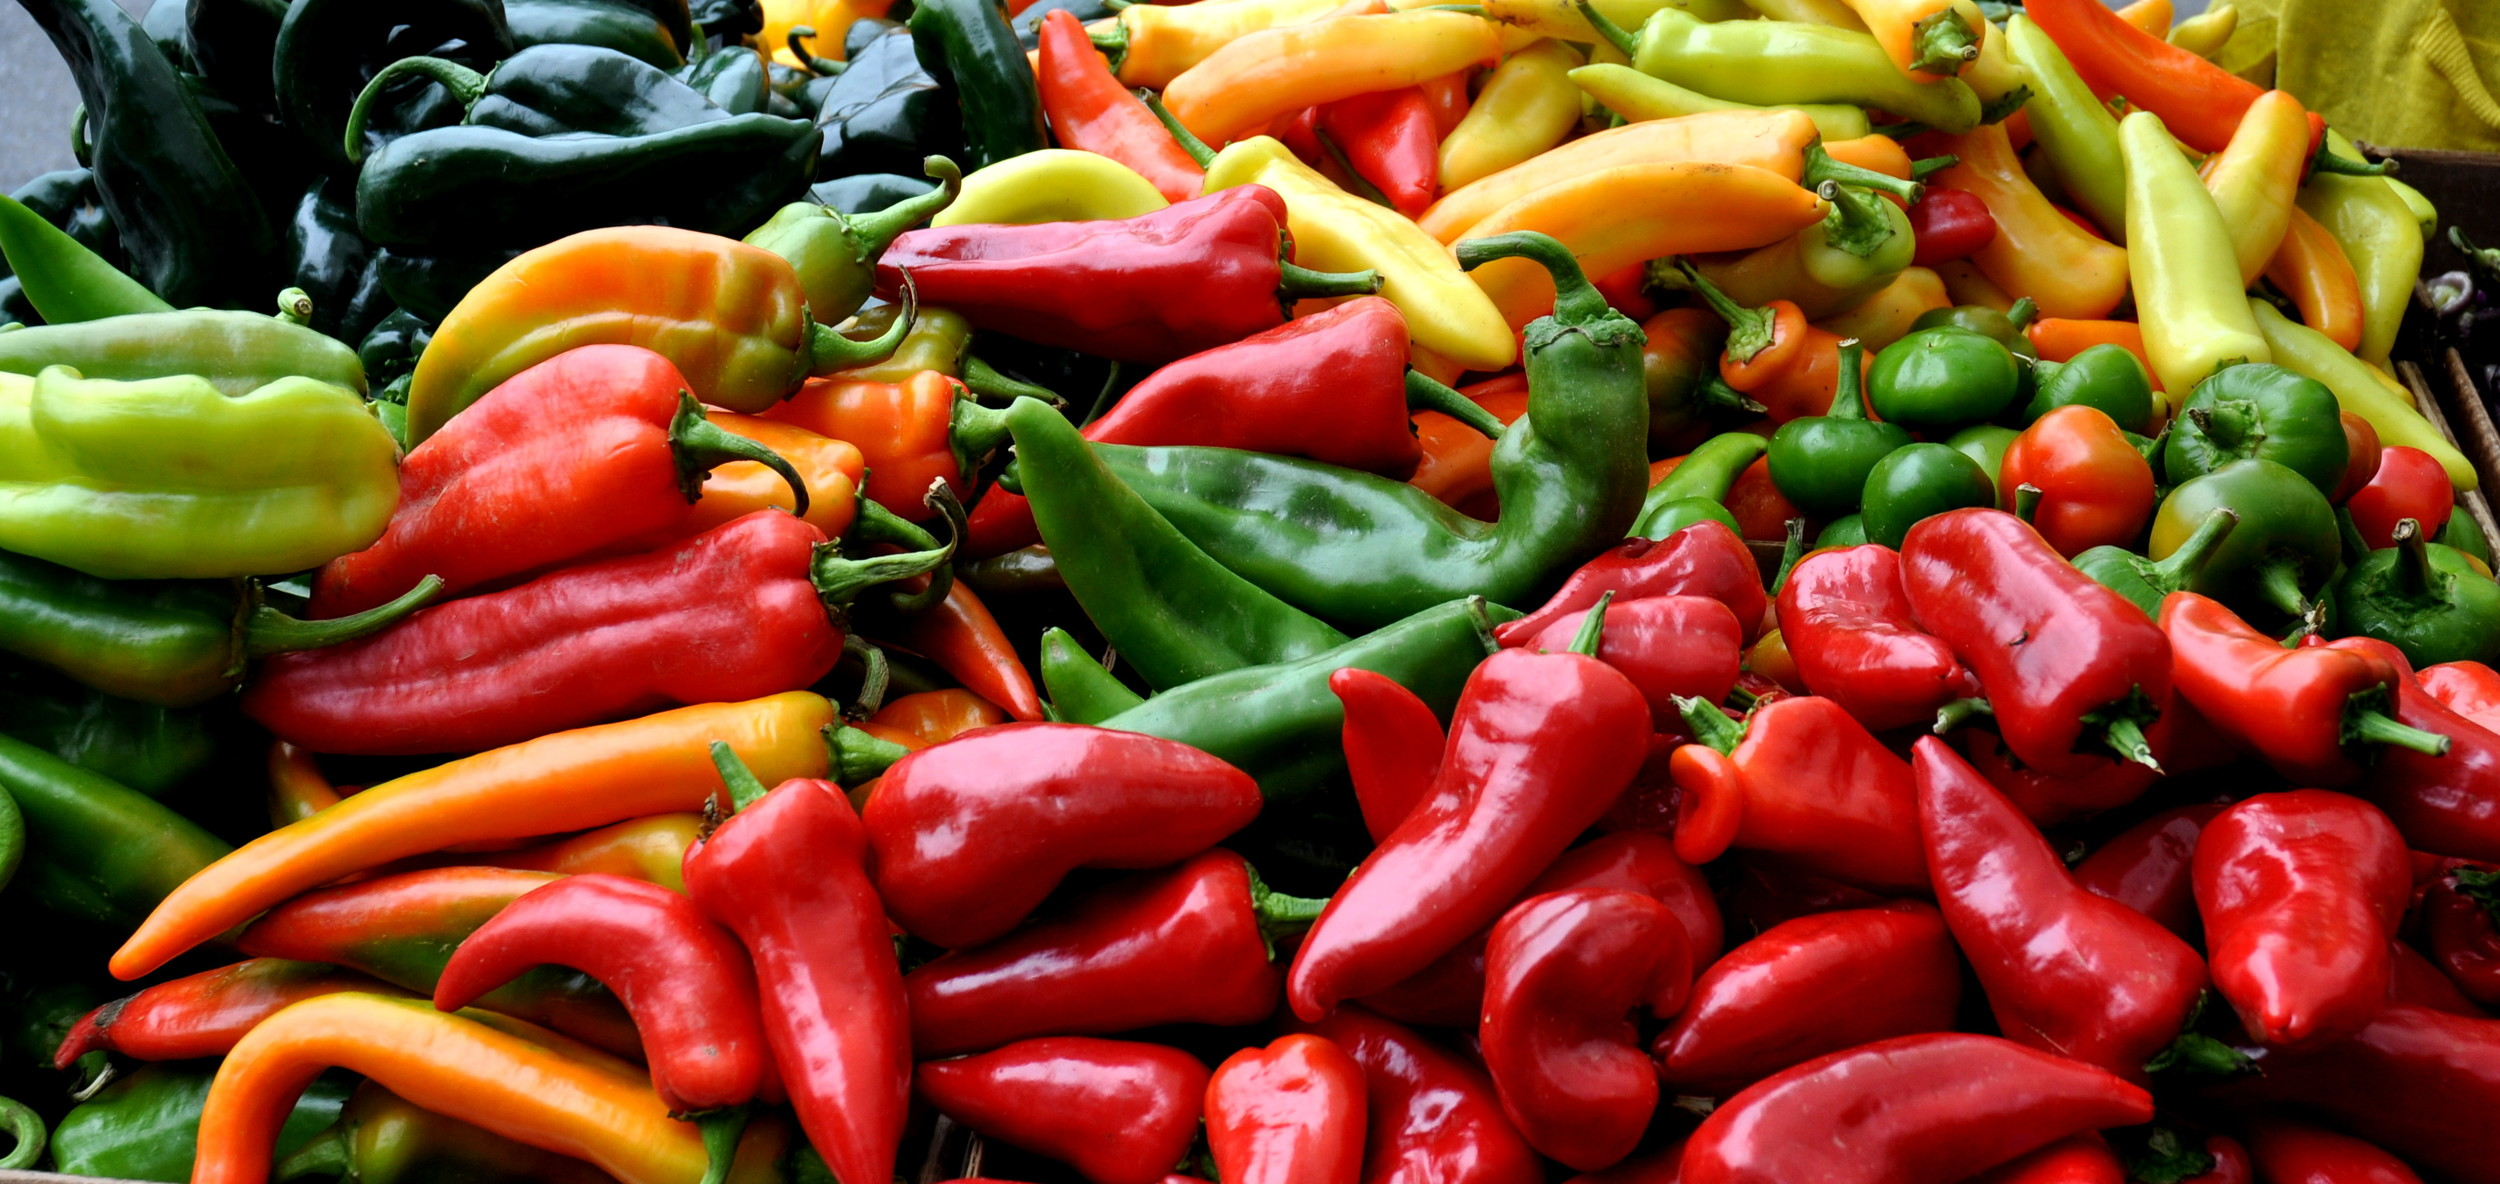 Hot chile peppers from Alvarez Organic Farms at Wallingford Farmers Market. Copyright  Zachary D. Lyons.